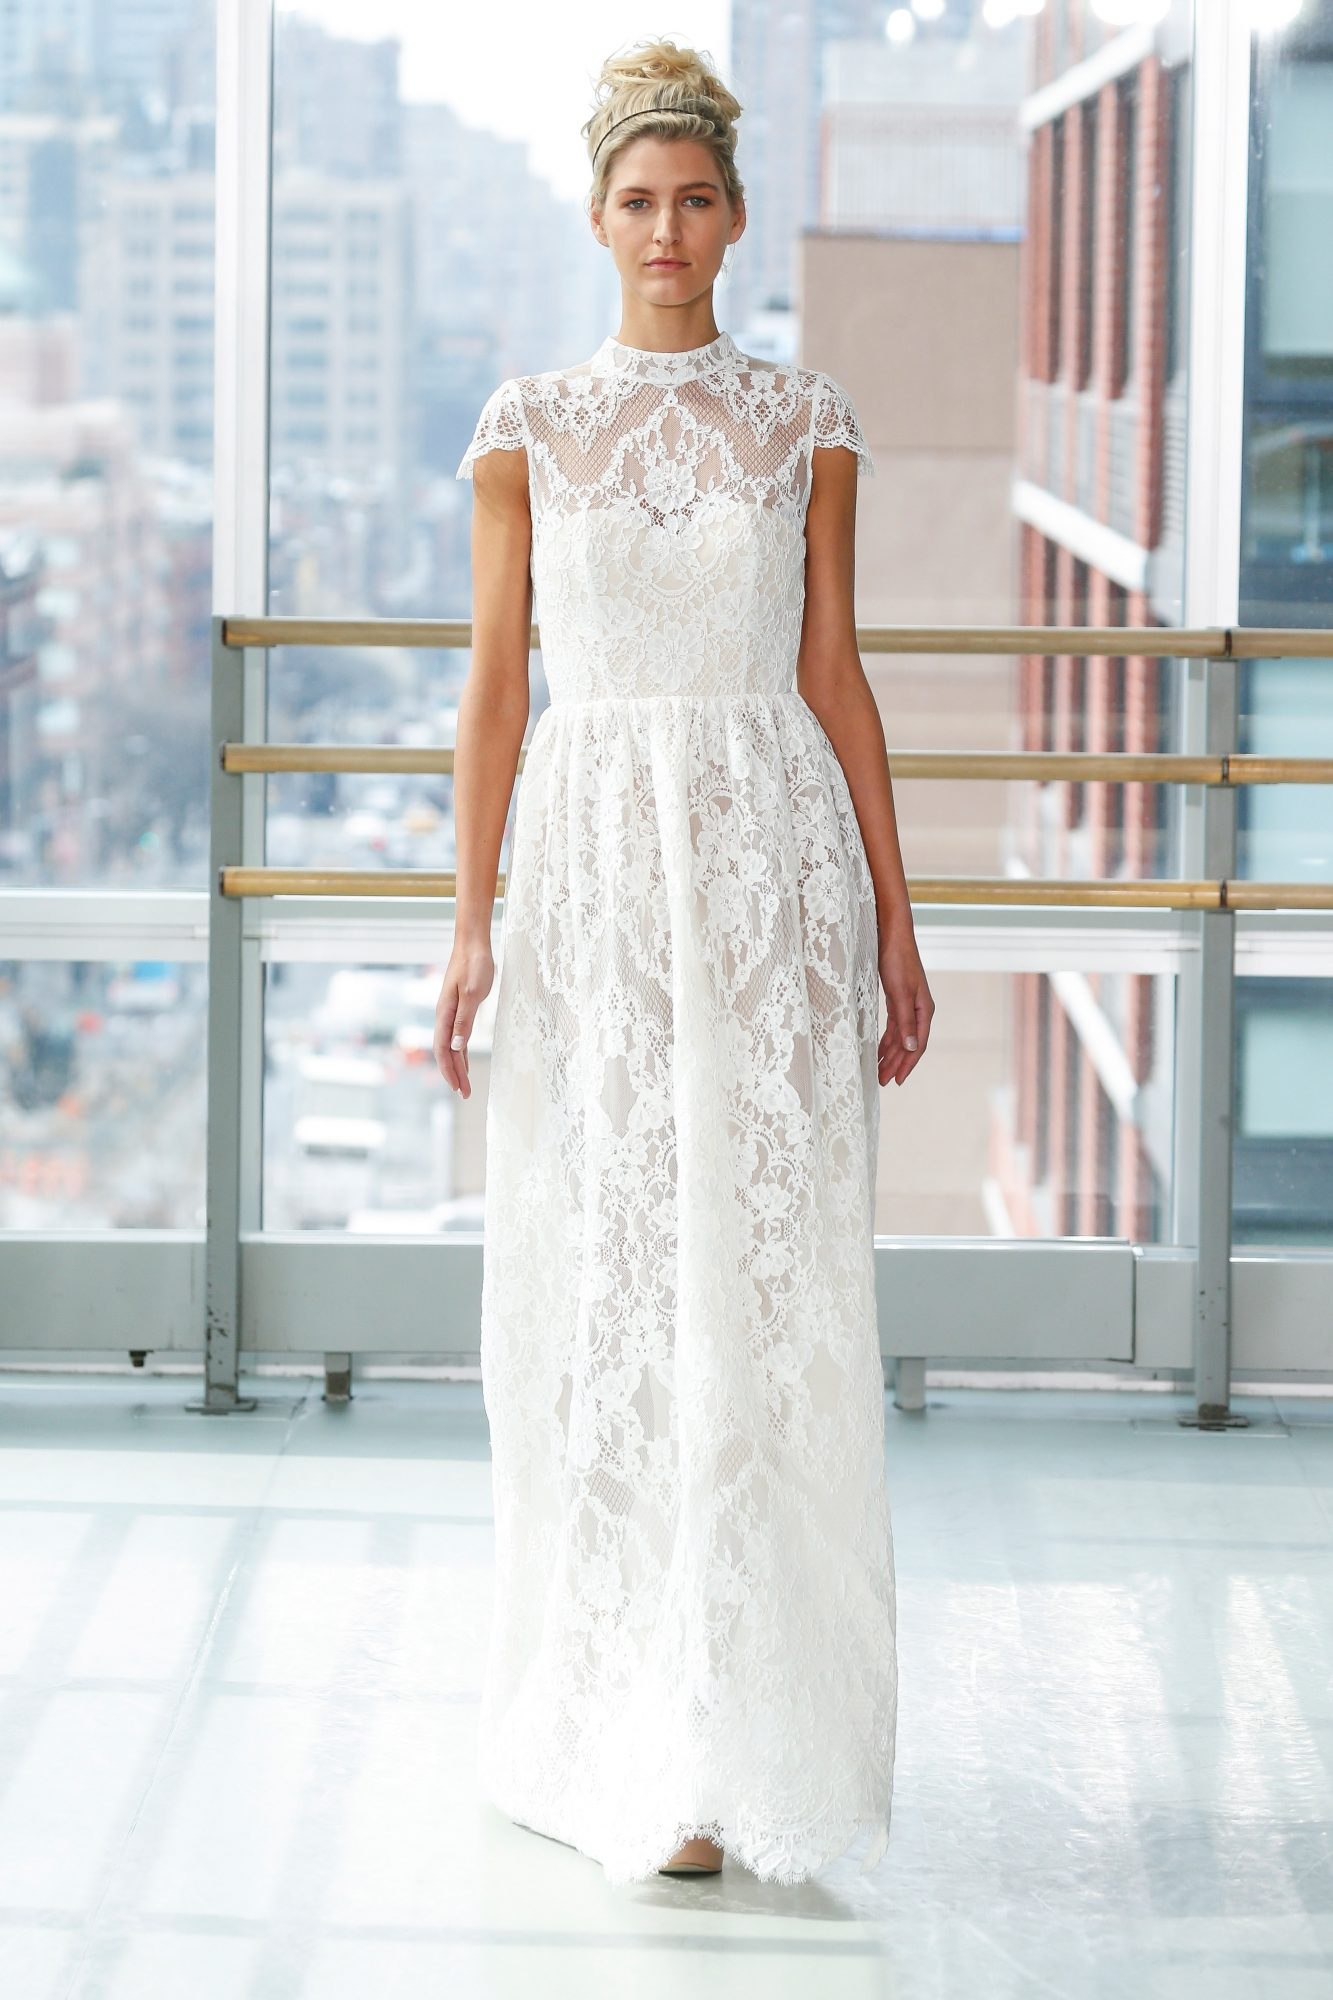 gracy accad wedding dress spring 2019 lace short sleeves